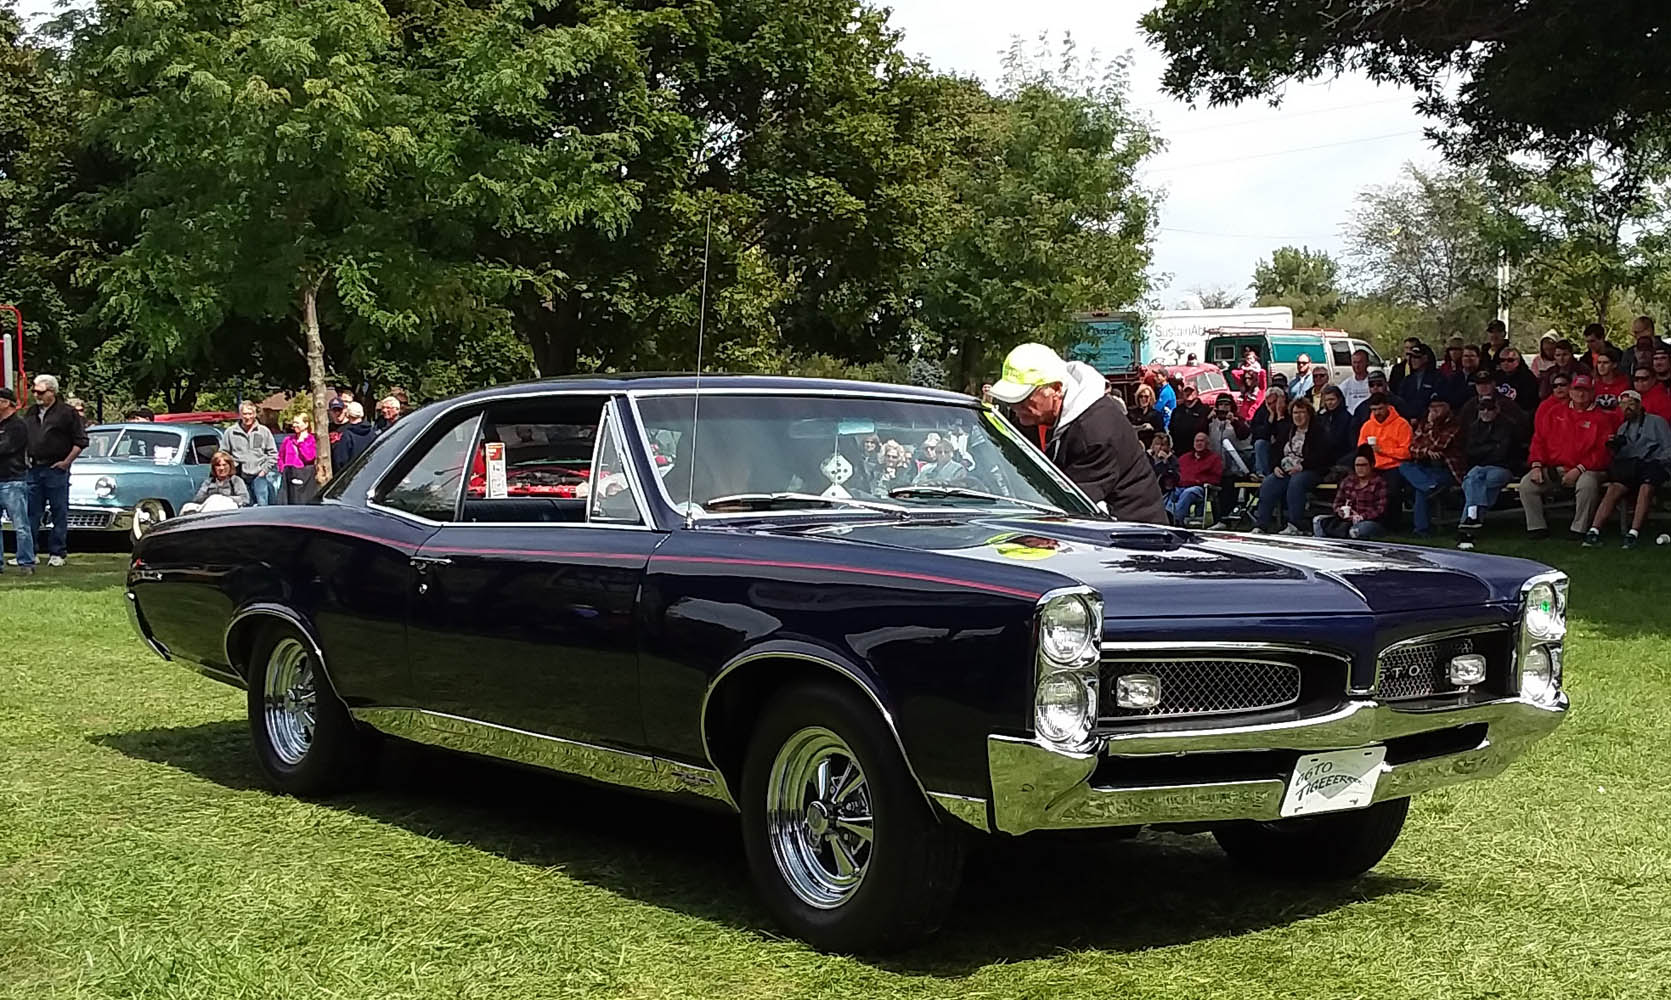 Specialty- 1967 GTO, Barb Statler 1